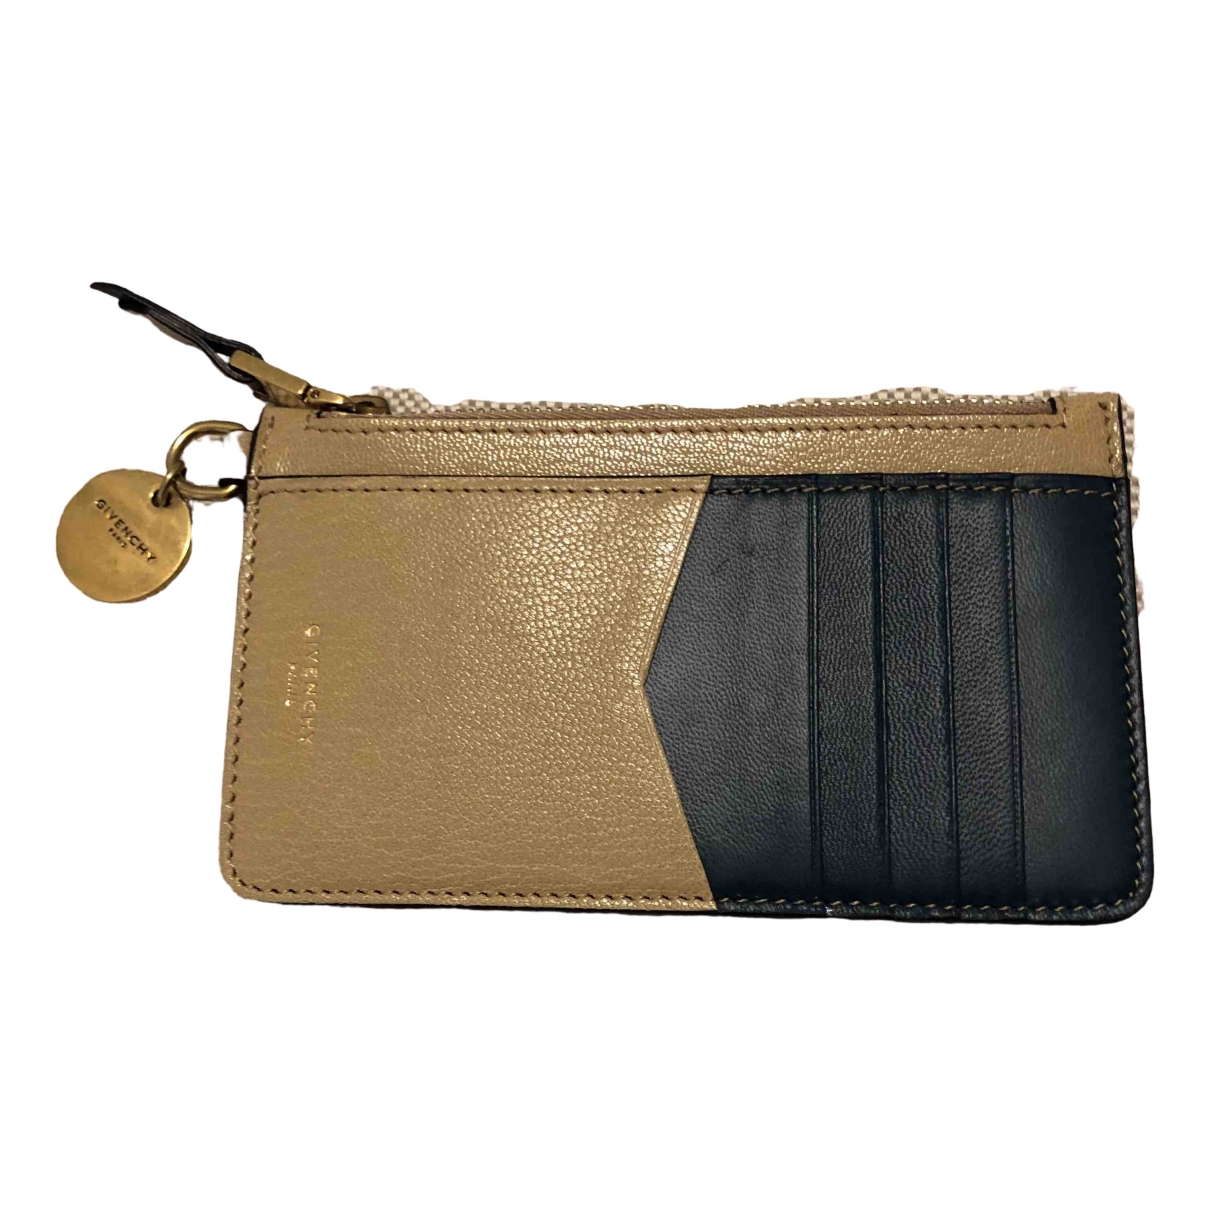 Givenchy \N Ecru Leather wallet for Women \N